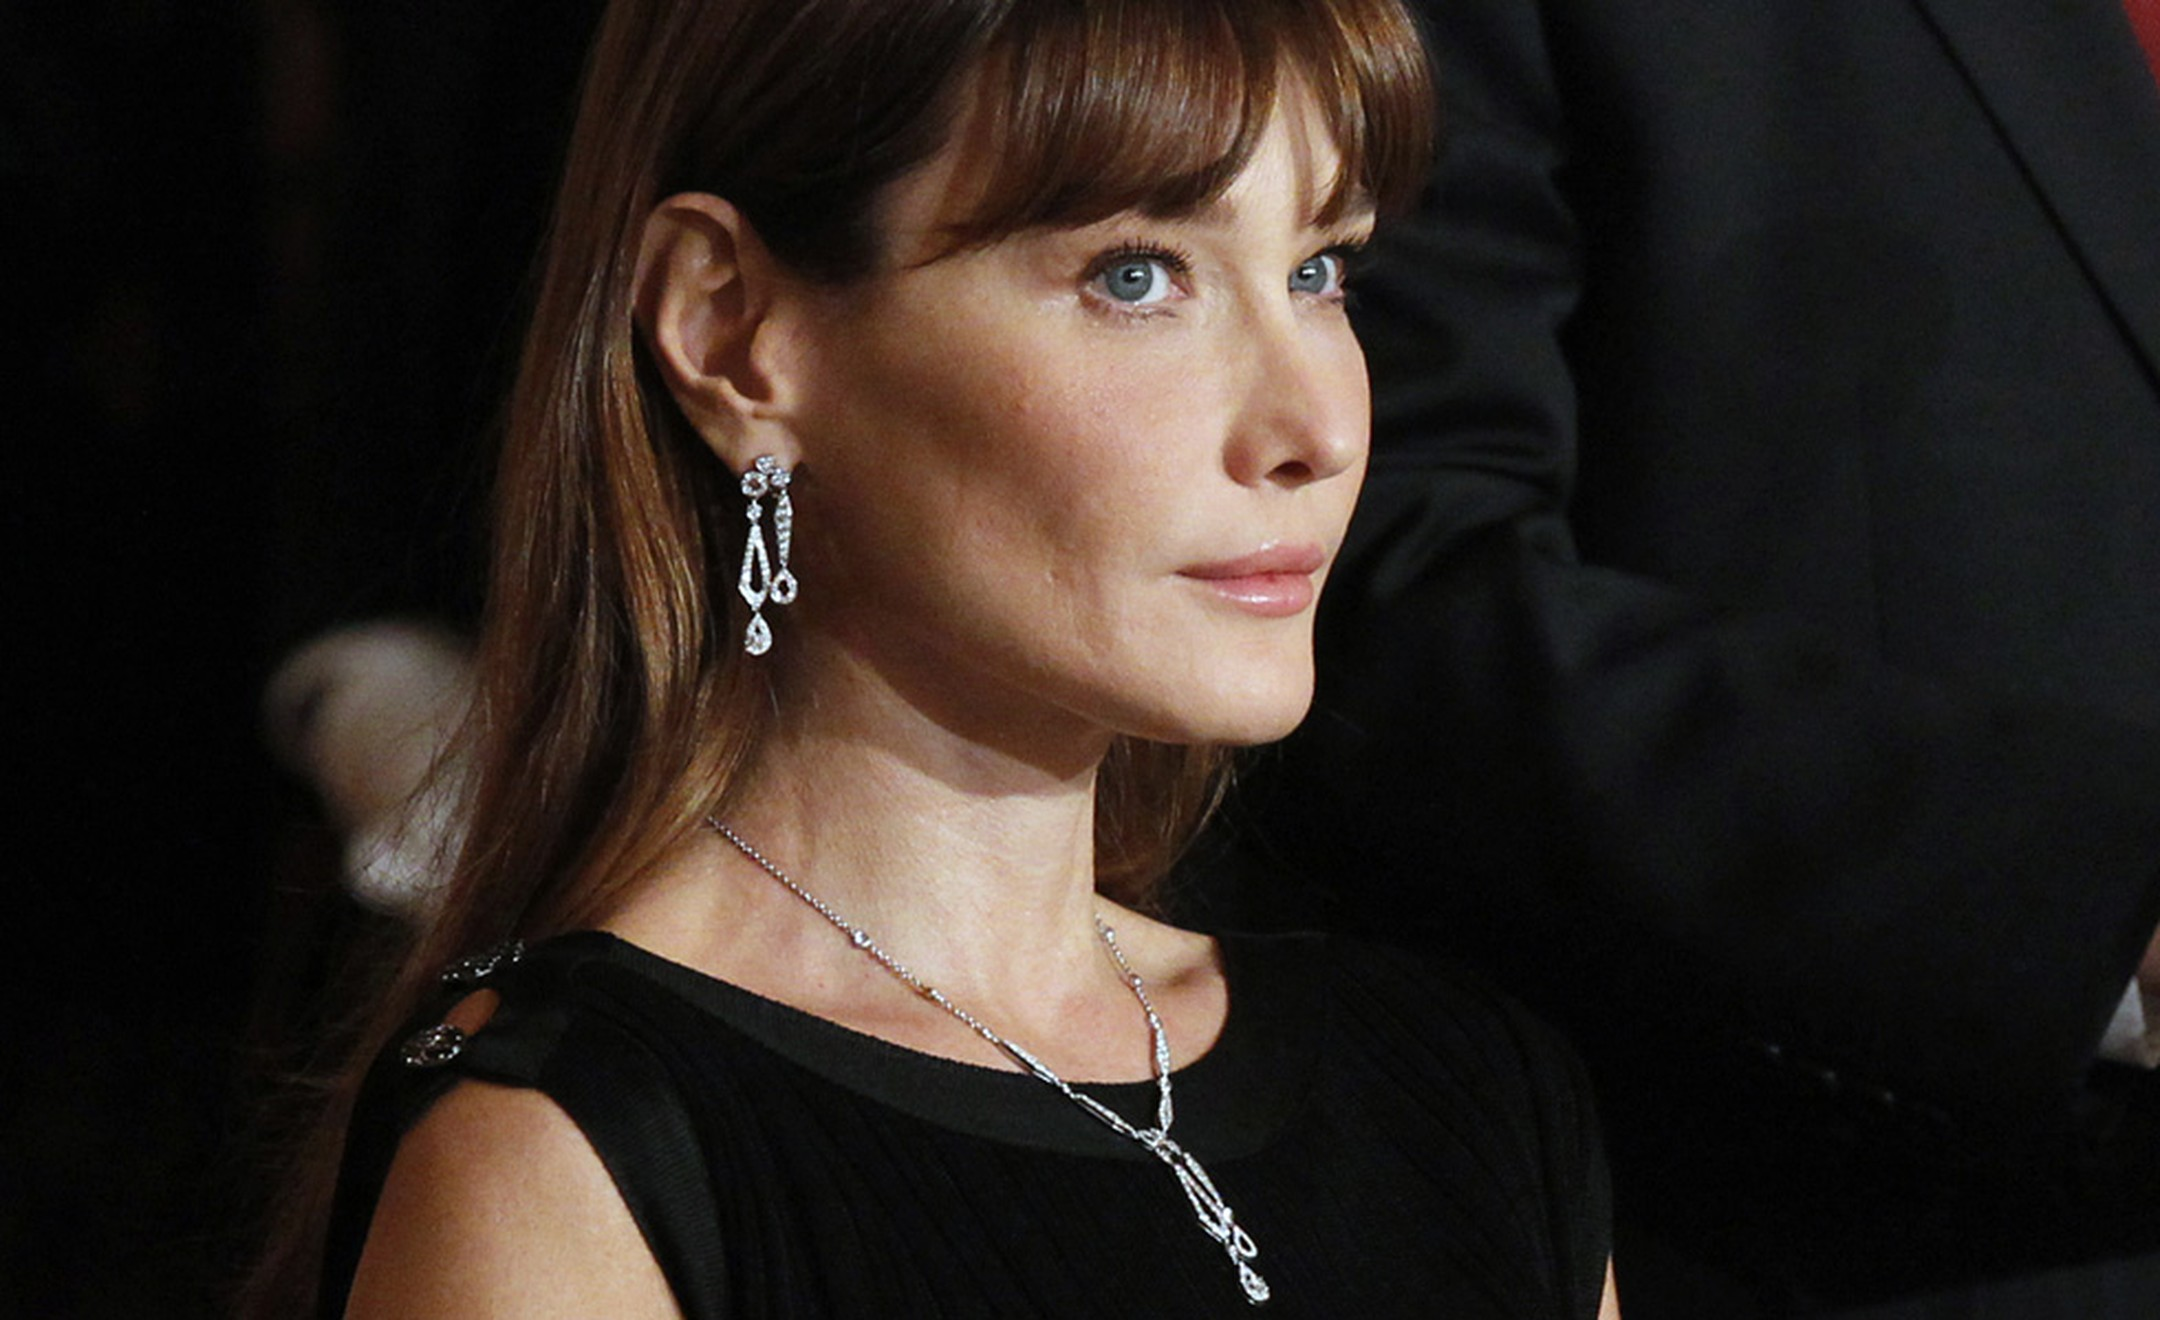 Carla Bruni-Sarkozy in Chaumet earrings and necklace